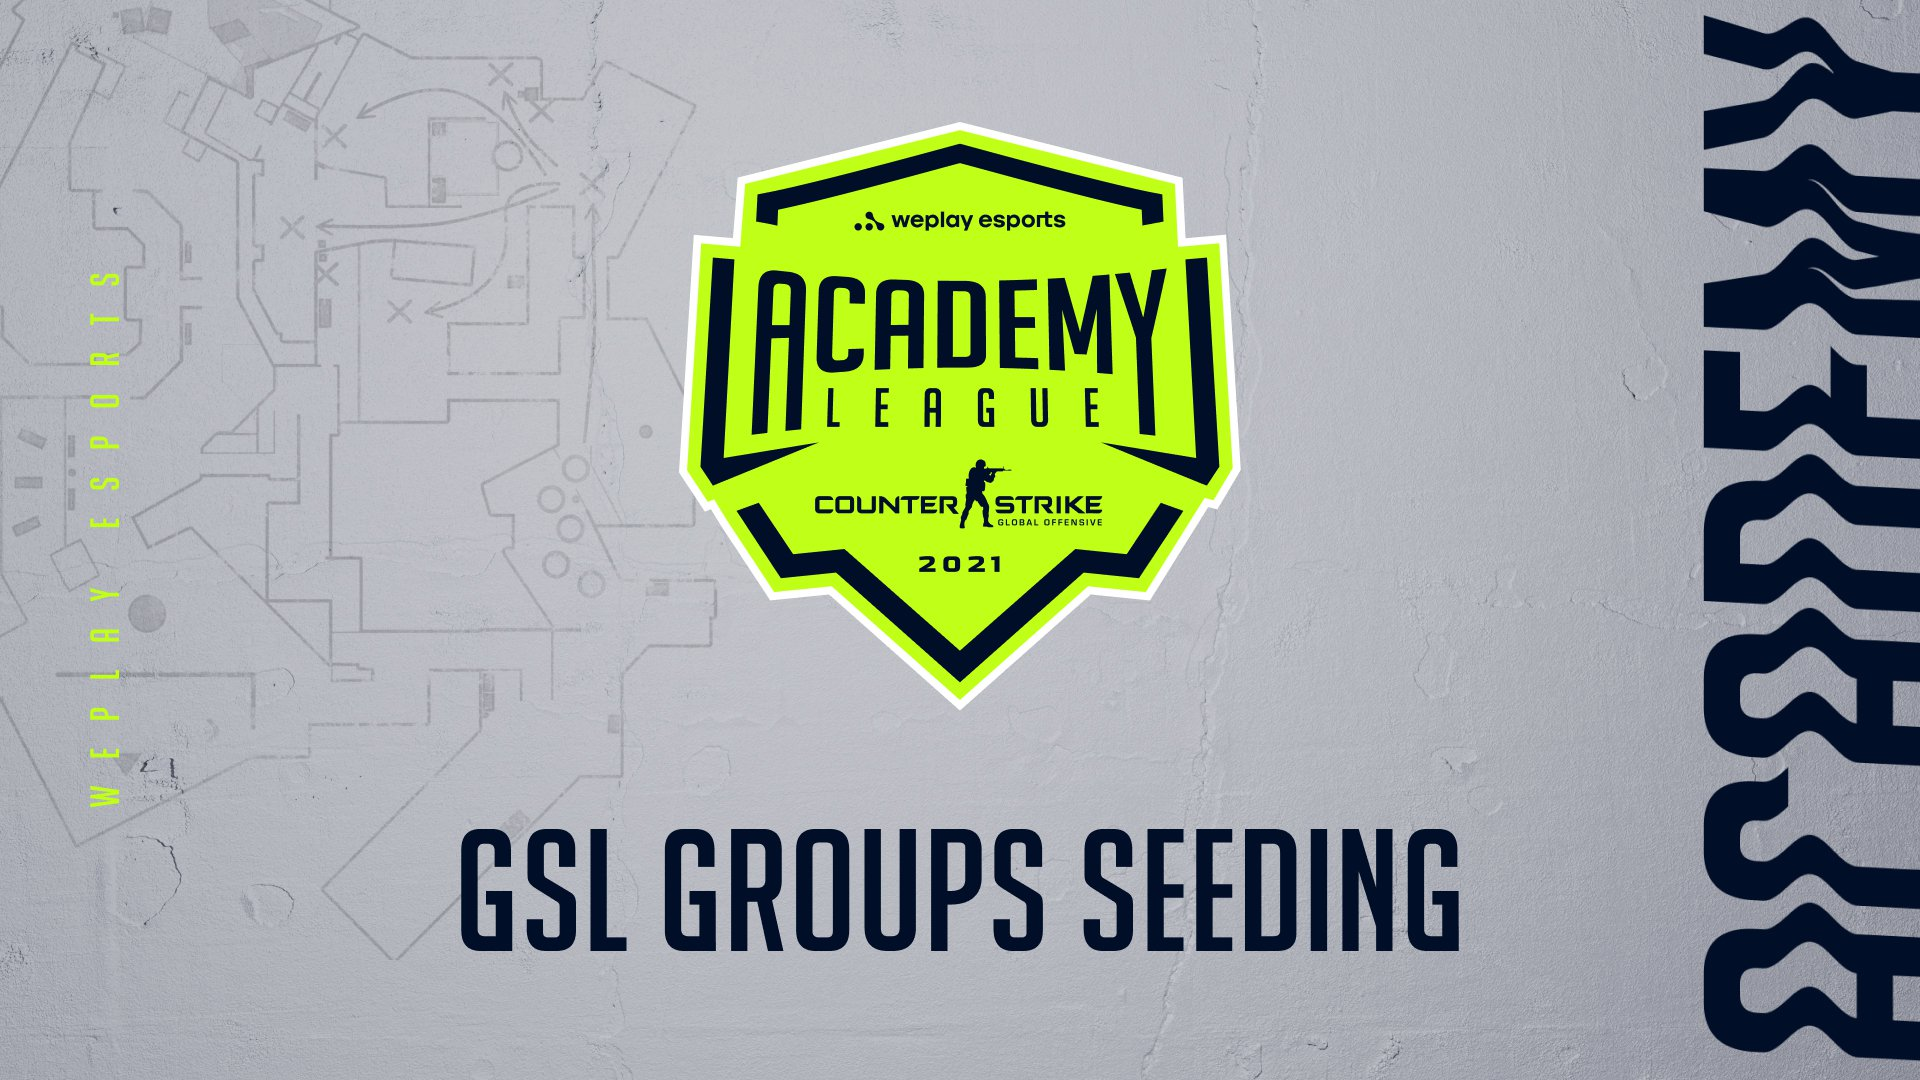 GSL groups composition for the WePlay Academy League Season 2 is defined. Image: WePlay Holding